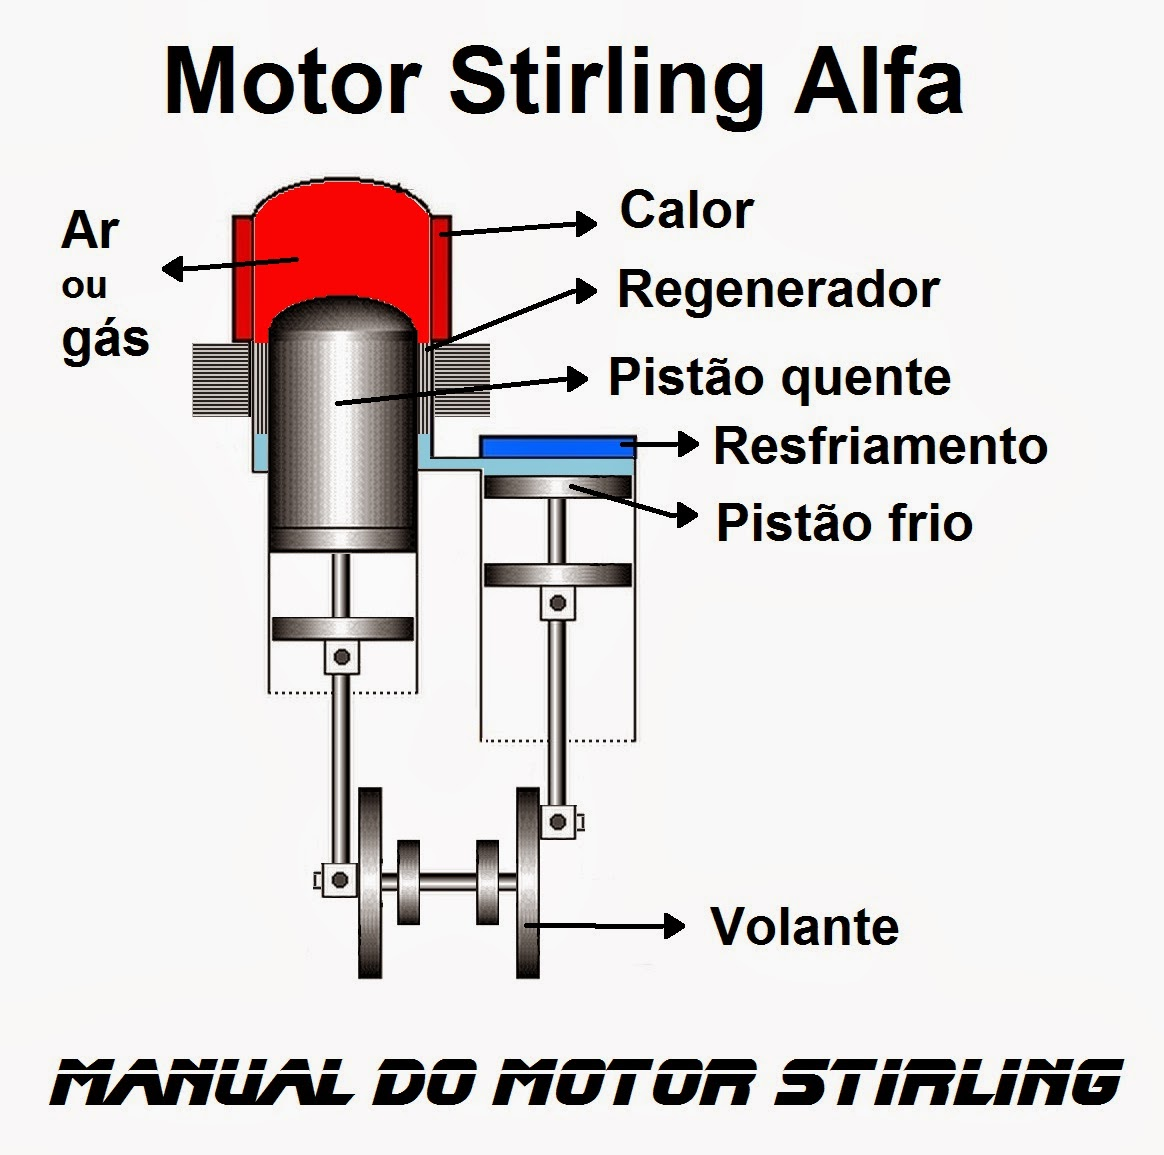 Manual do motor Stilring, Motor Stirling Alfa